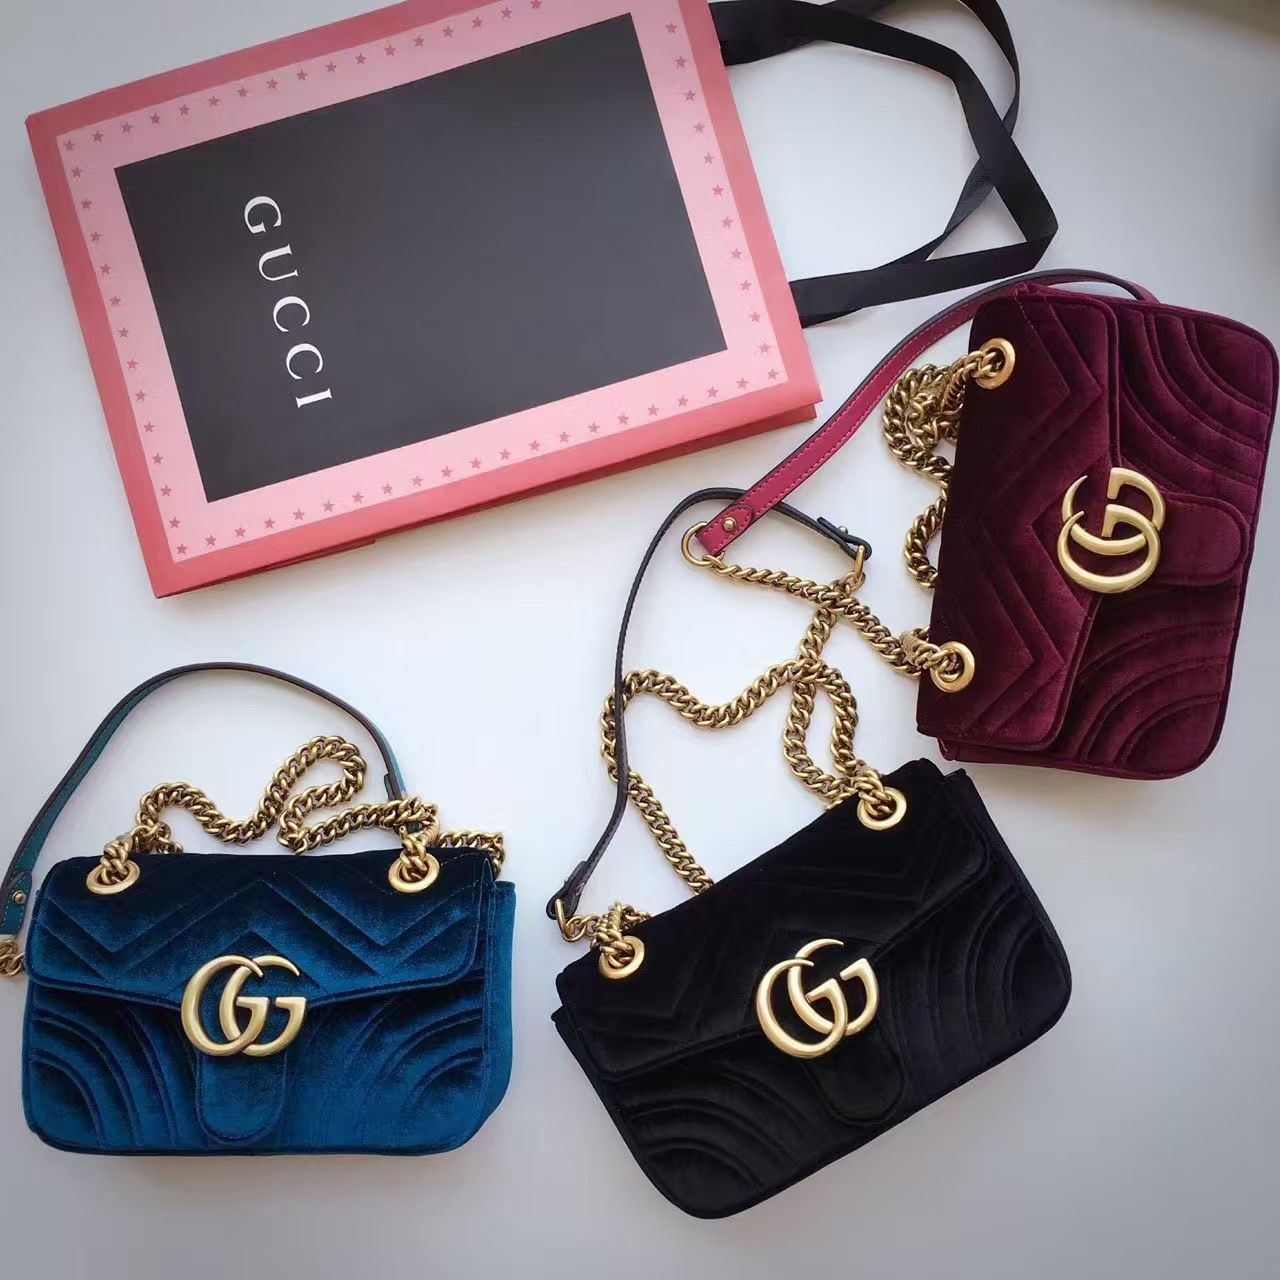 35e6ad3ace3  218 Gucci GG Marmont Velvet Mini Shoulder Bag 443497 2016 Email   winnie shoescrazy.net  handbag  tradee app